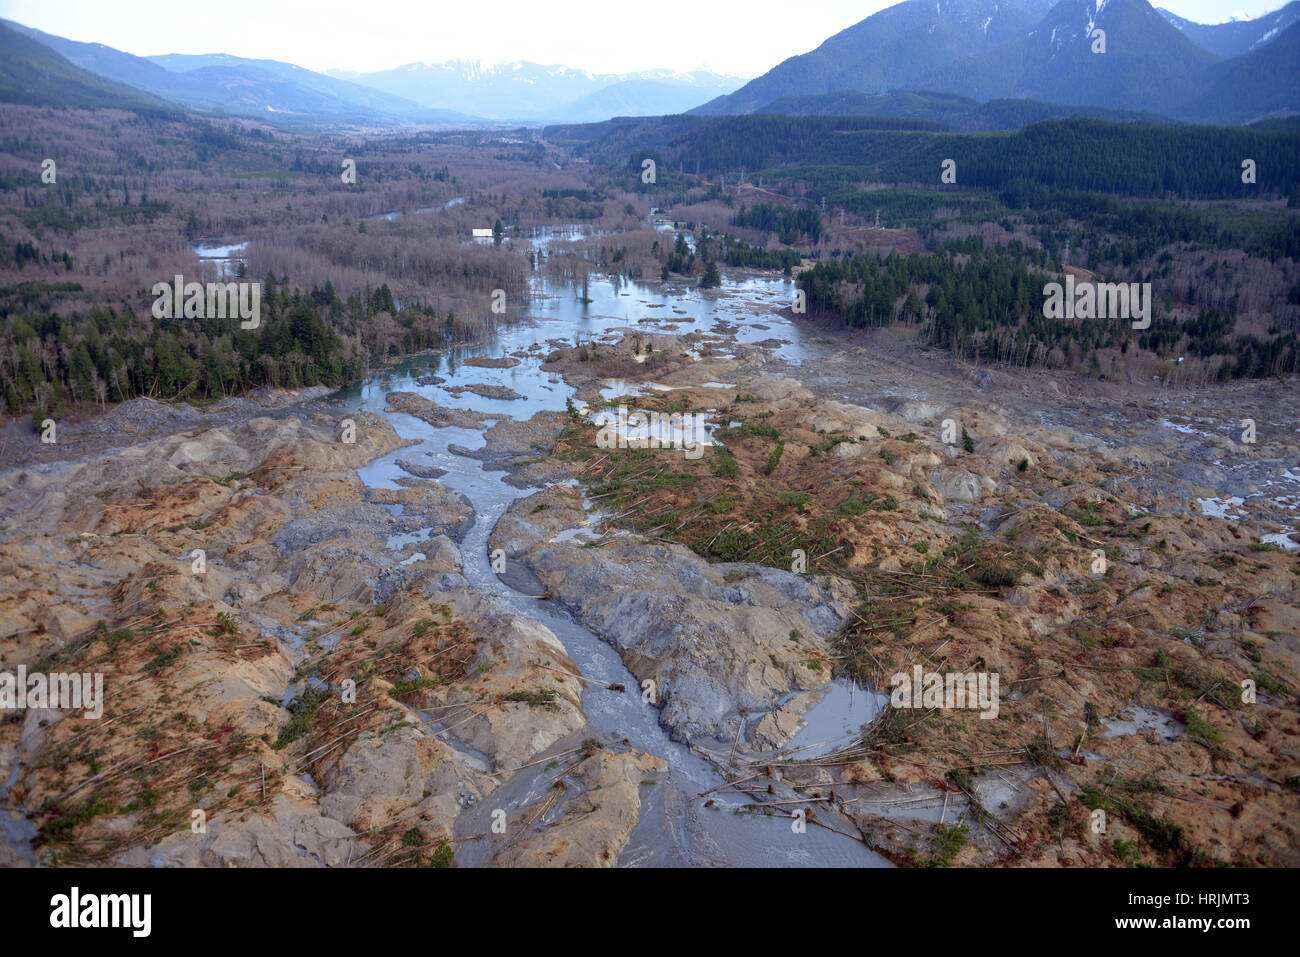 Washington Landslide, 2014 - Stock Image